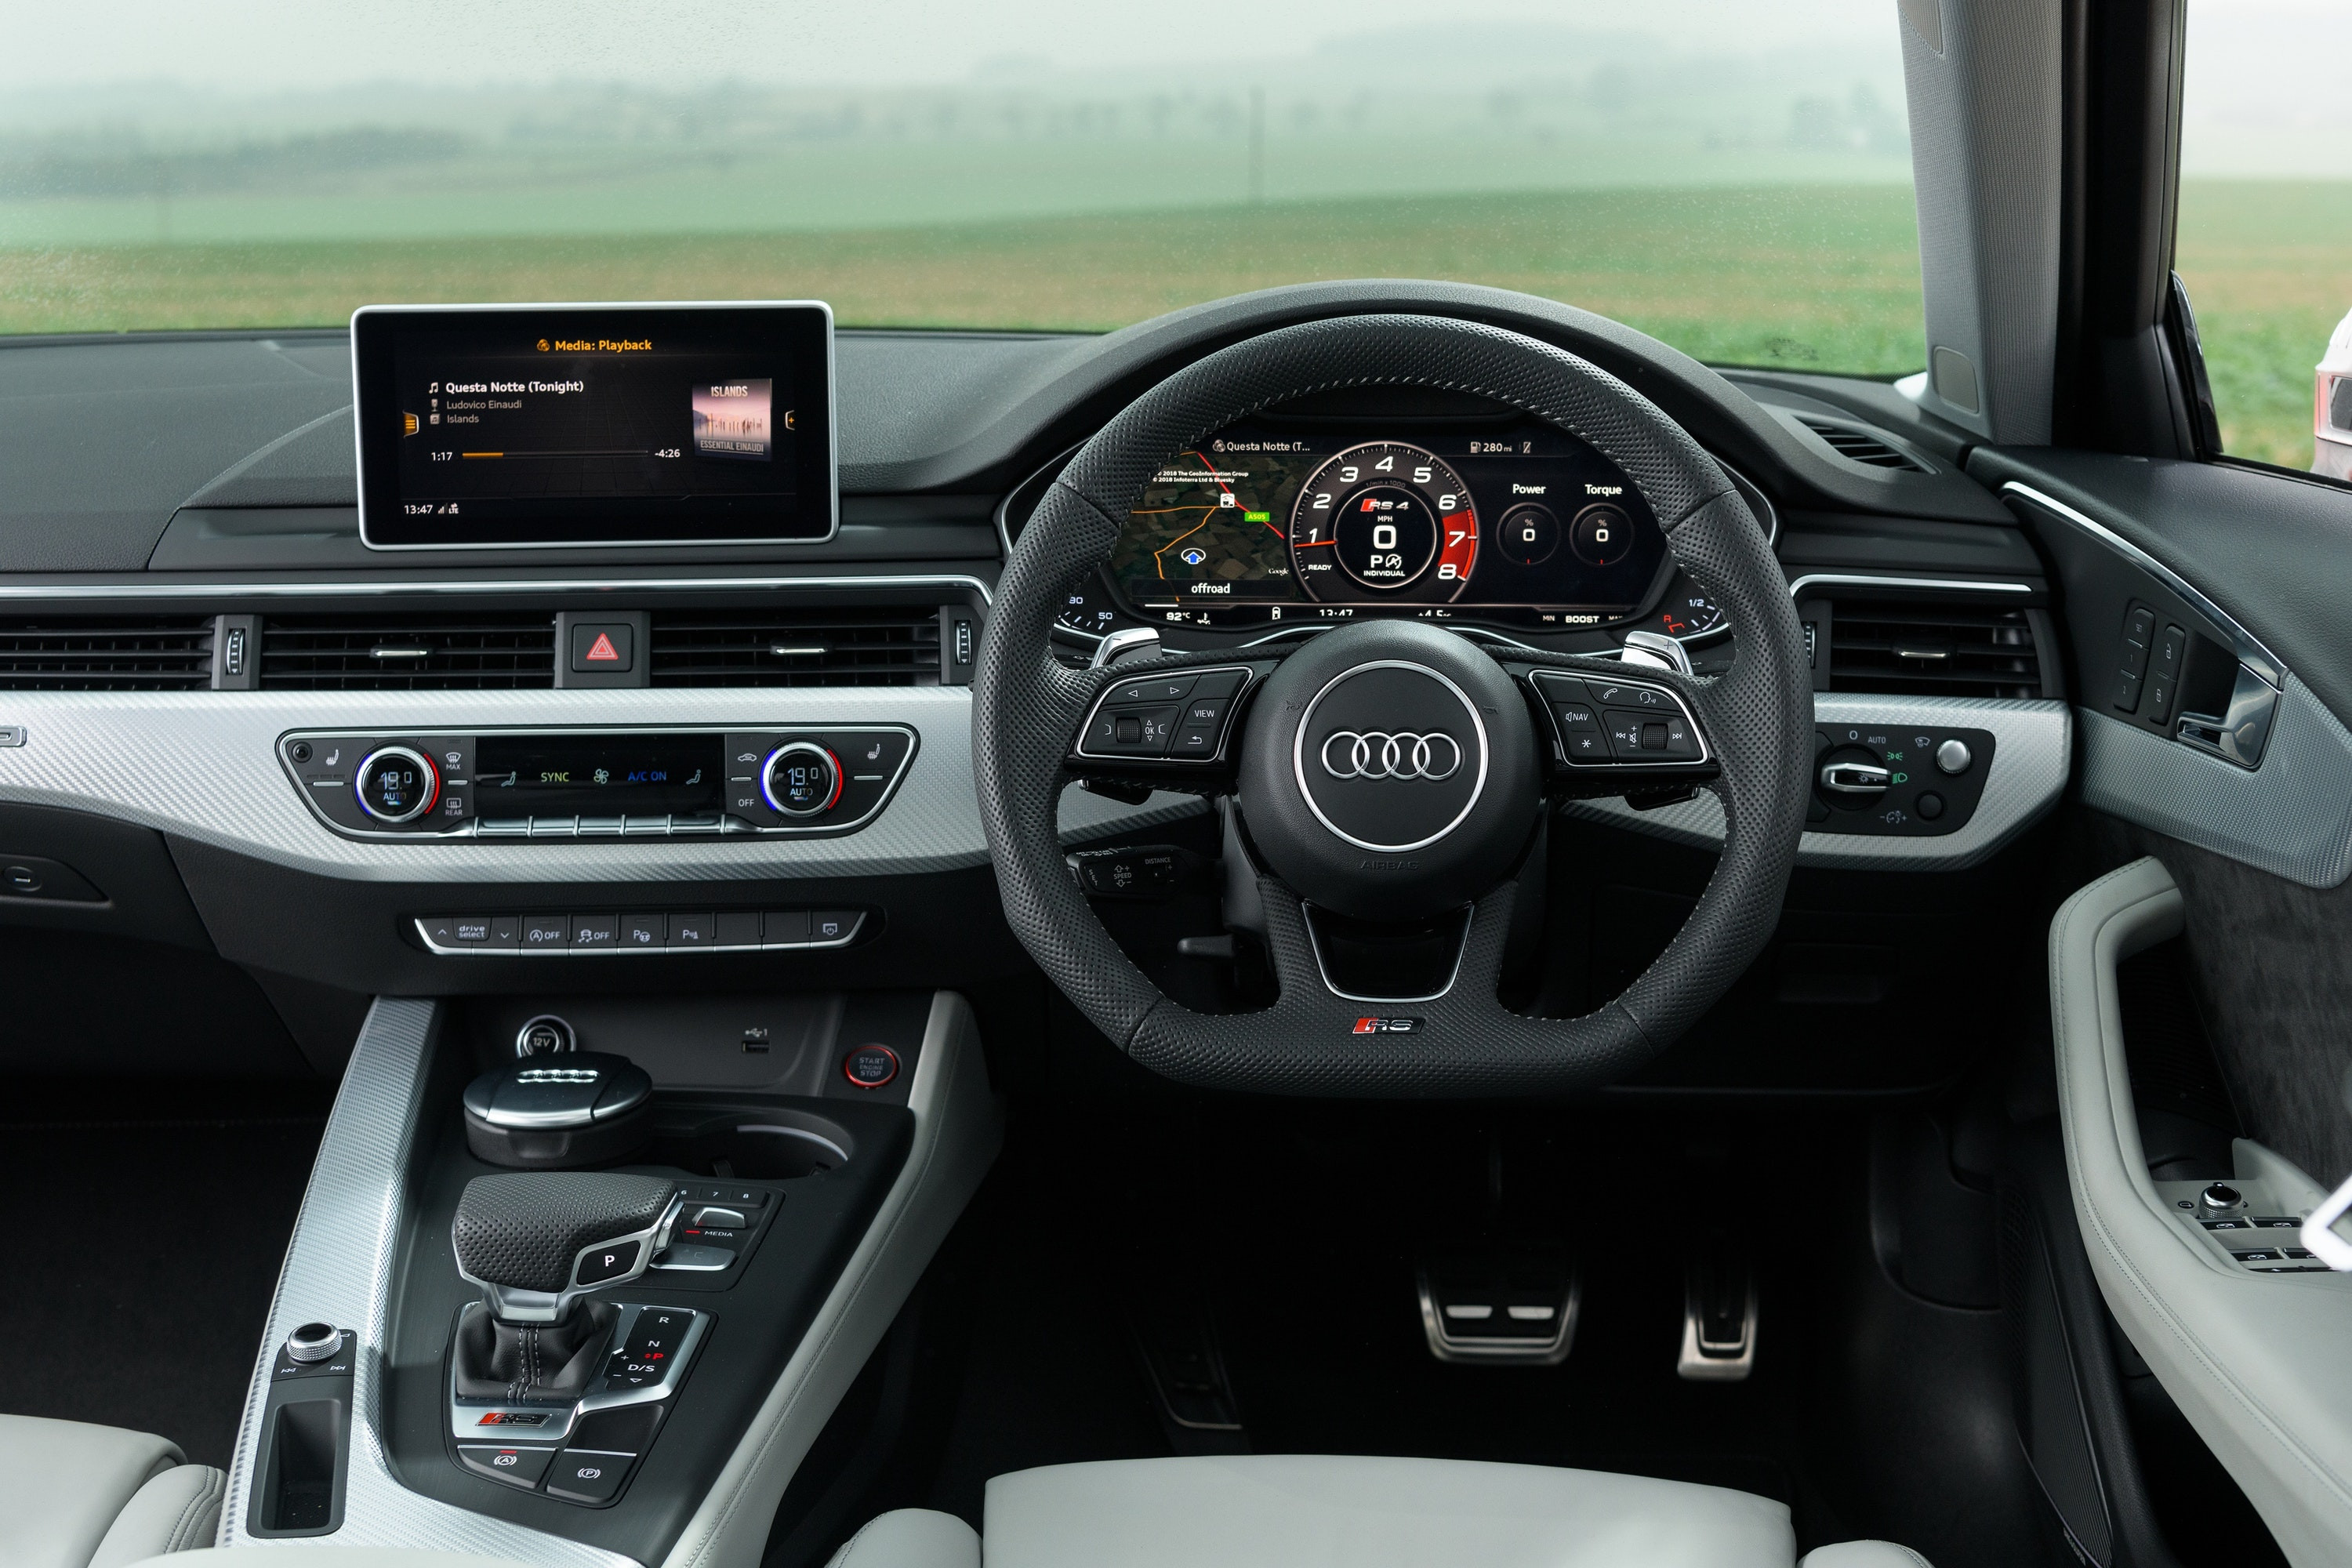 Interior of the Audi RS4 Avant